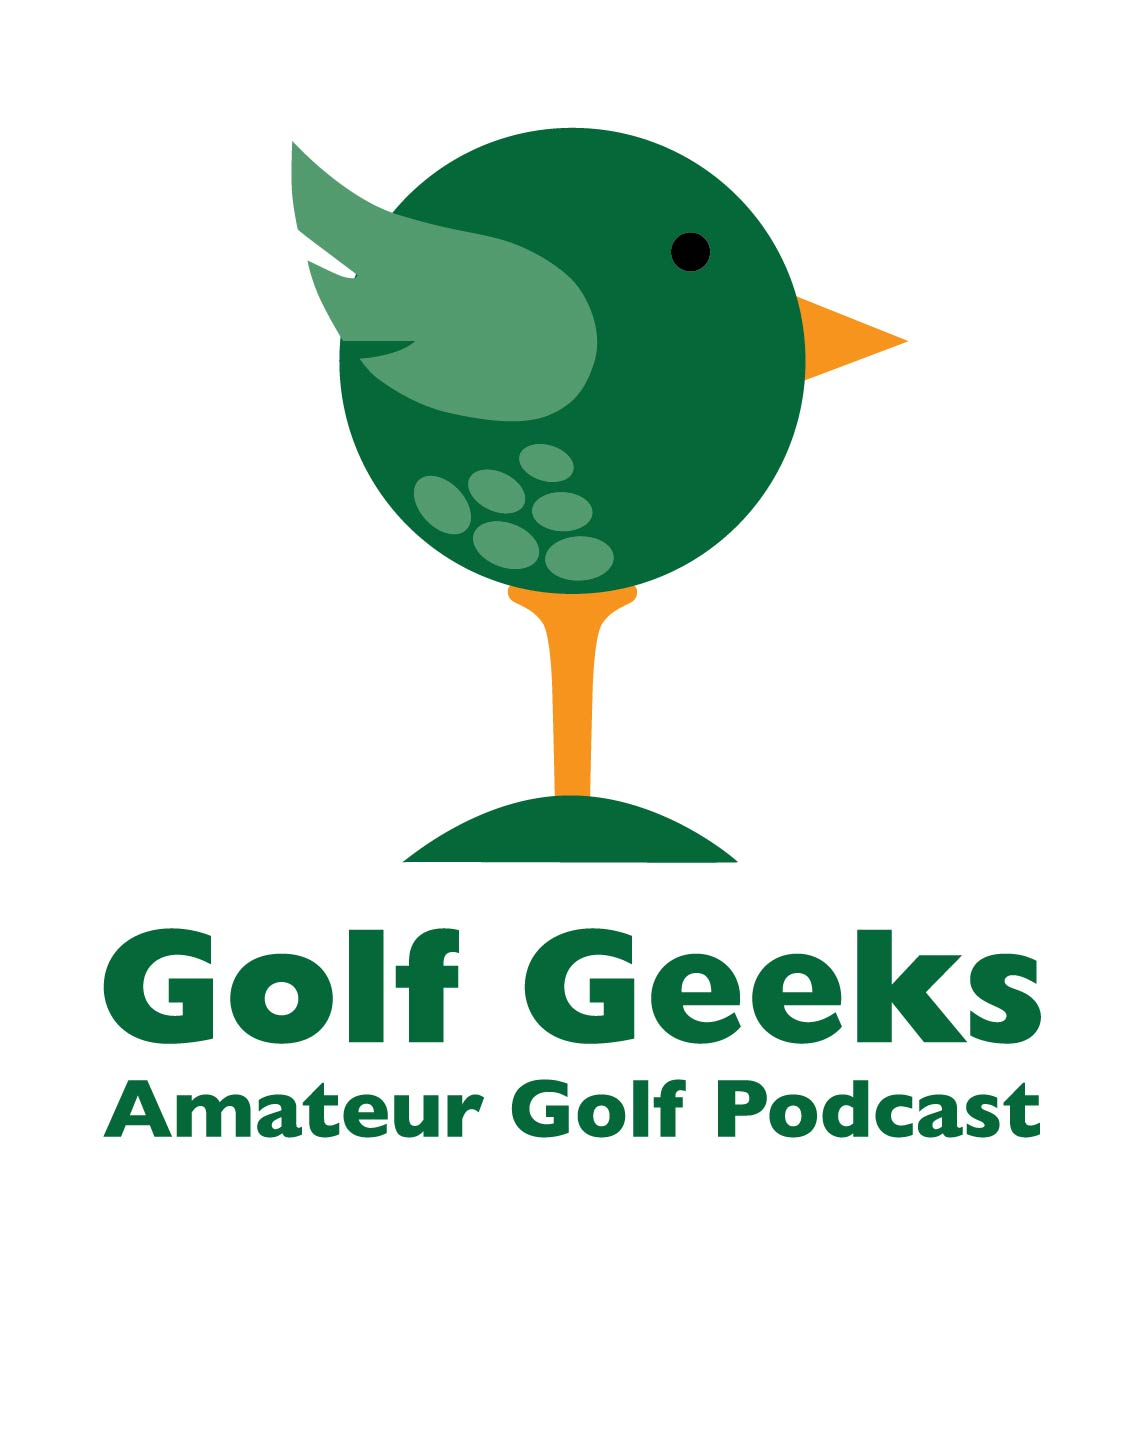 Golf Geeks Amateur Golf Podcast Special – Surviving Lockdown!